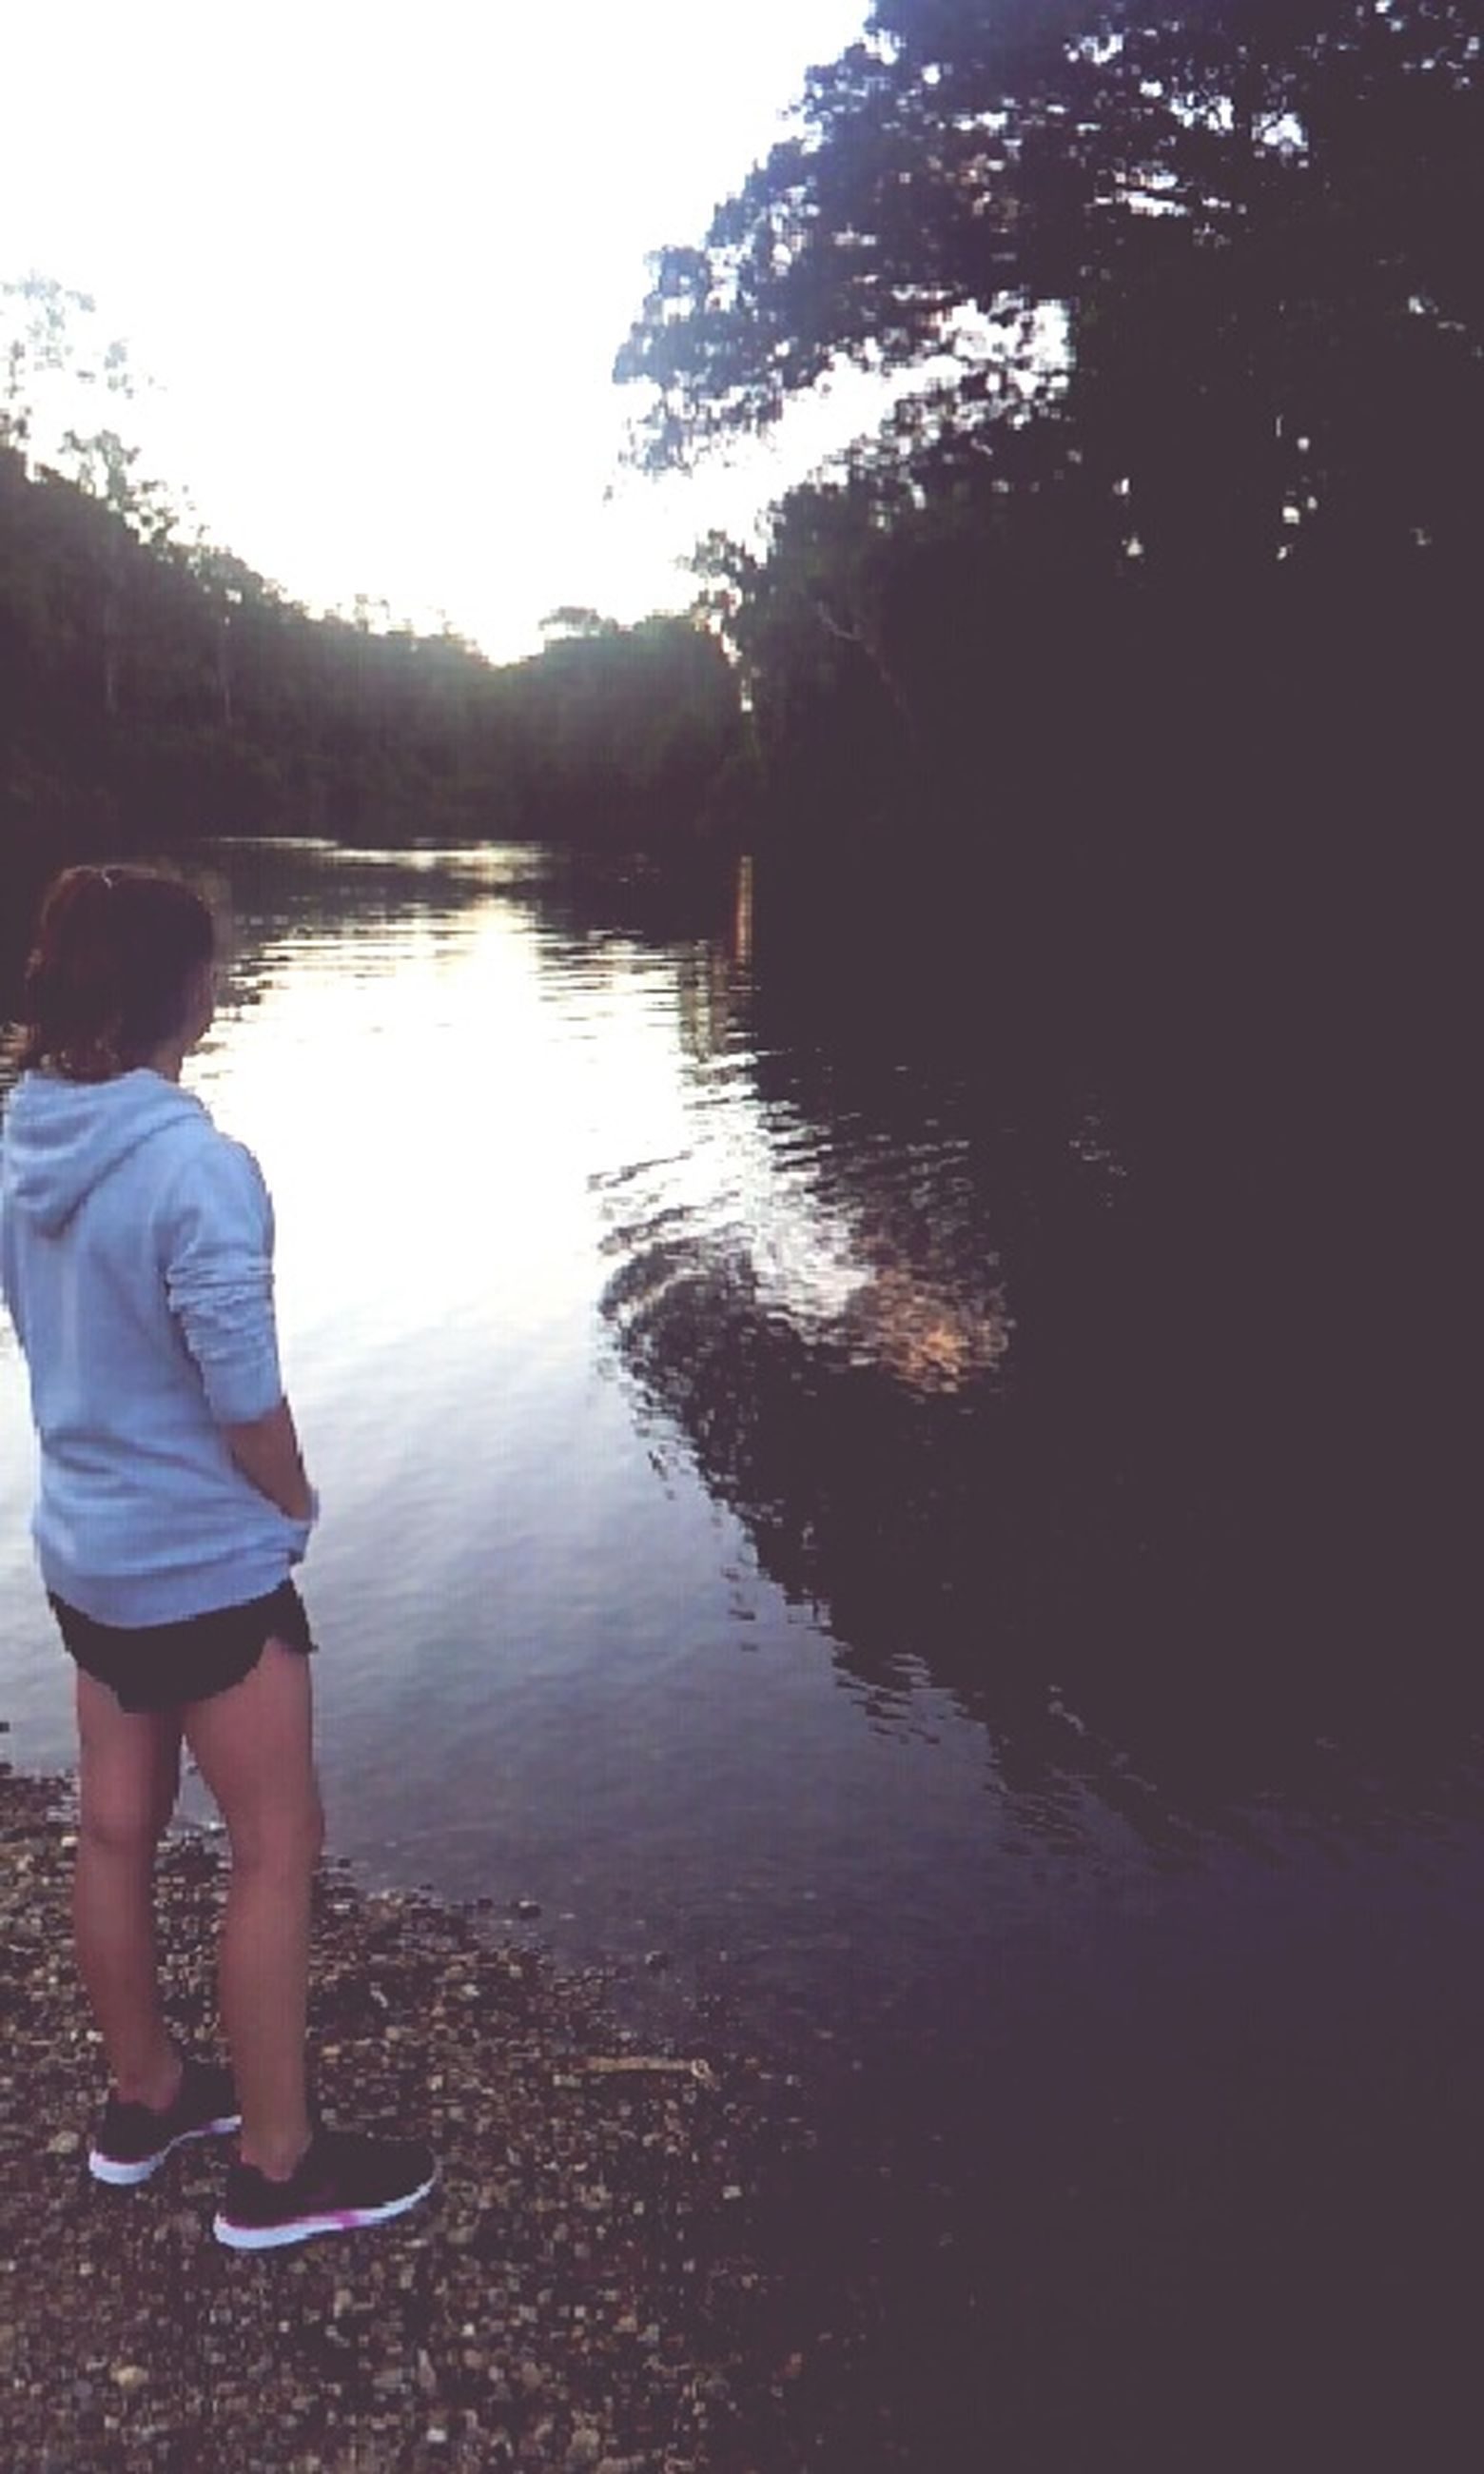 water, lifestyles, leisure activity, lake, rear view, casual clothing, standing, tree, tranquility, full length, tranquil scene, men, nature, reflection, scenics, river, beauty in nature, sky